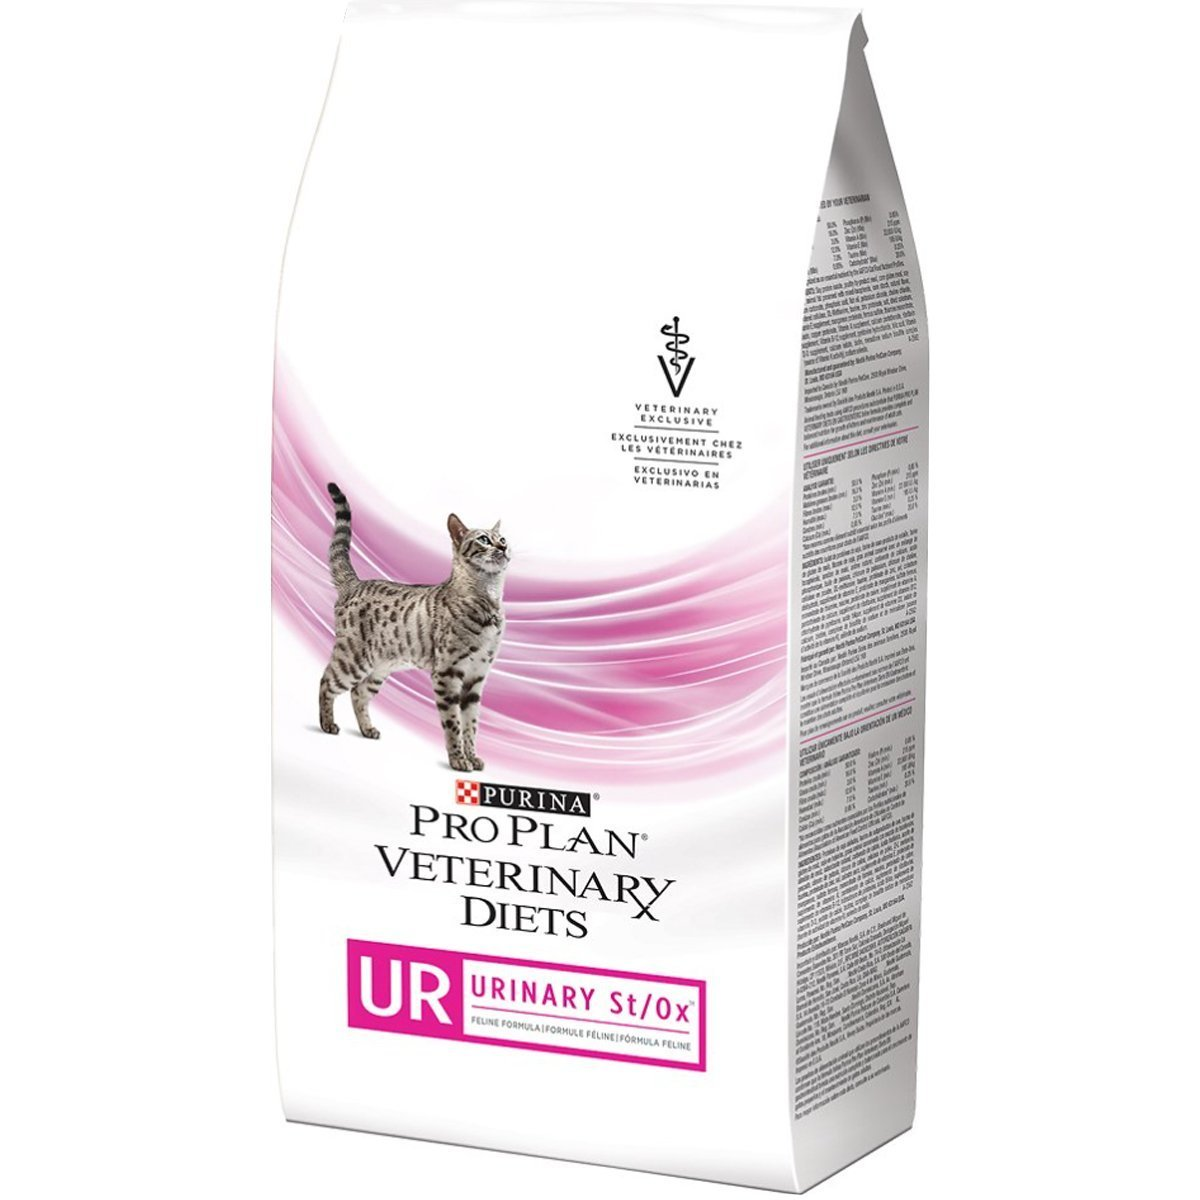 Purina UR Urinary Tract Cat Food 16 lb by Veterinary Diets